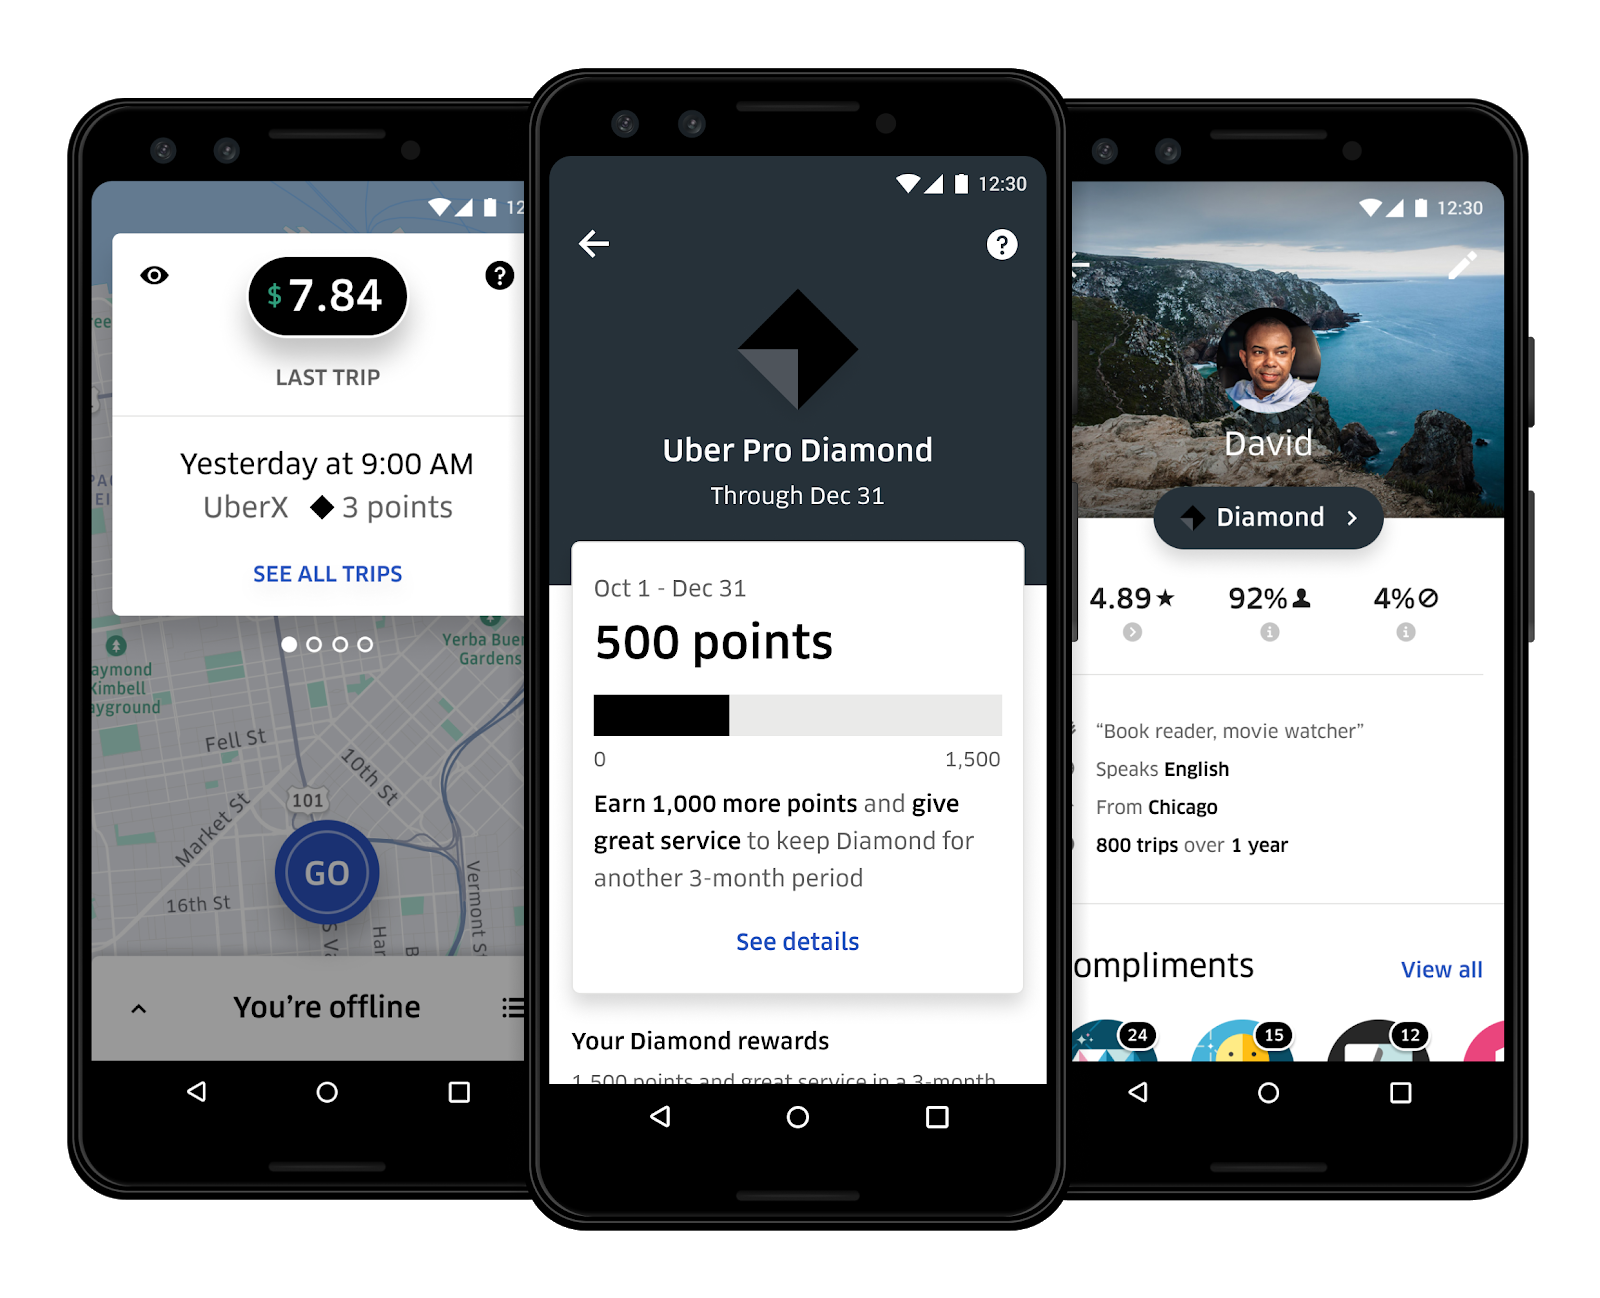 image of status updates for Uber Pro